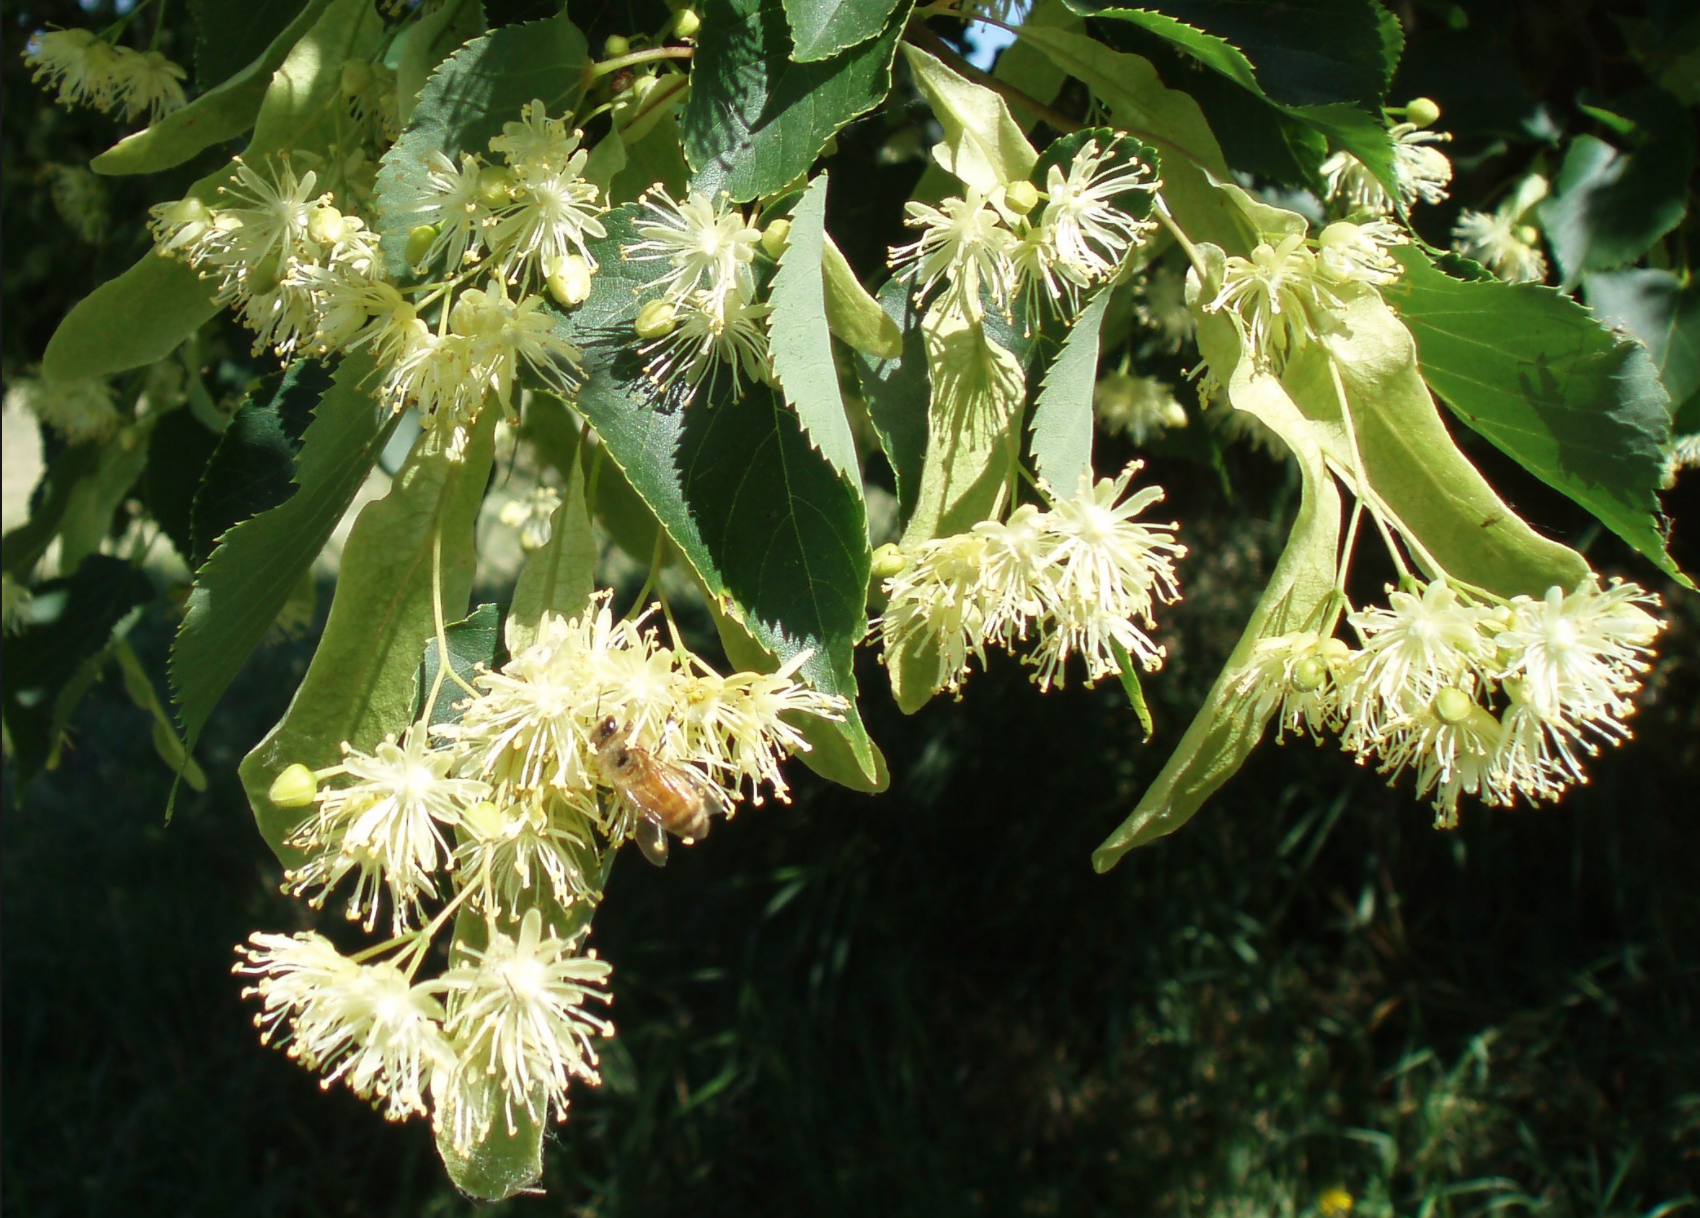 Know your trees linden trees the georgetown metropolitan in the spring the tree is covered in small yellowish white flowers with a very distinct earthy sweet smell the flowers look like this mightylinksfo